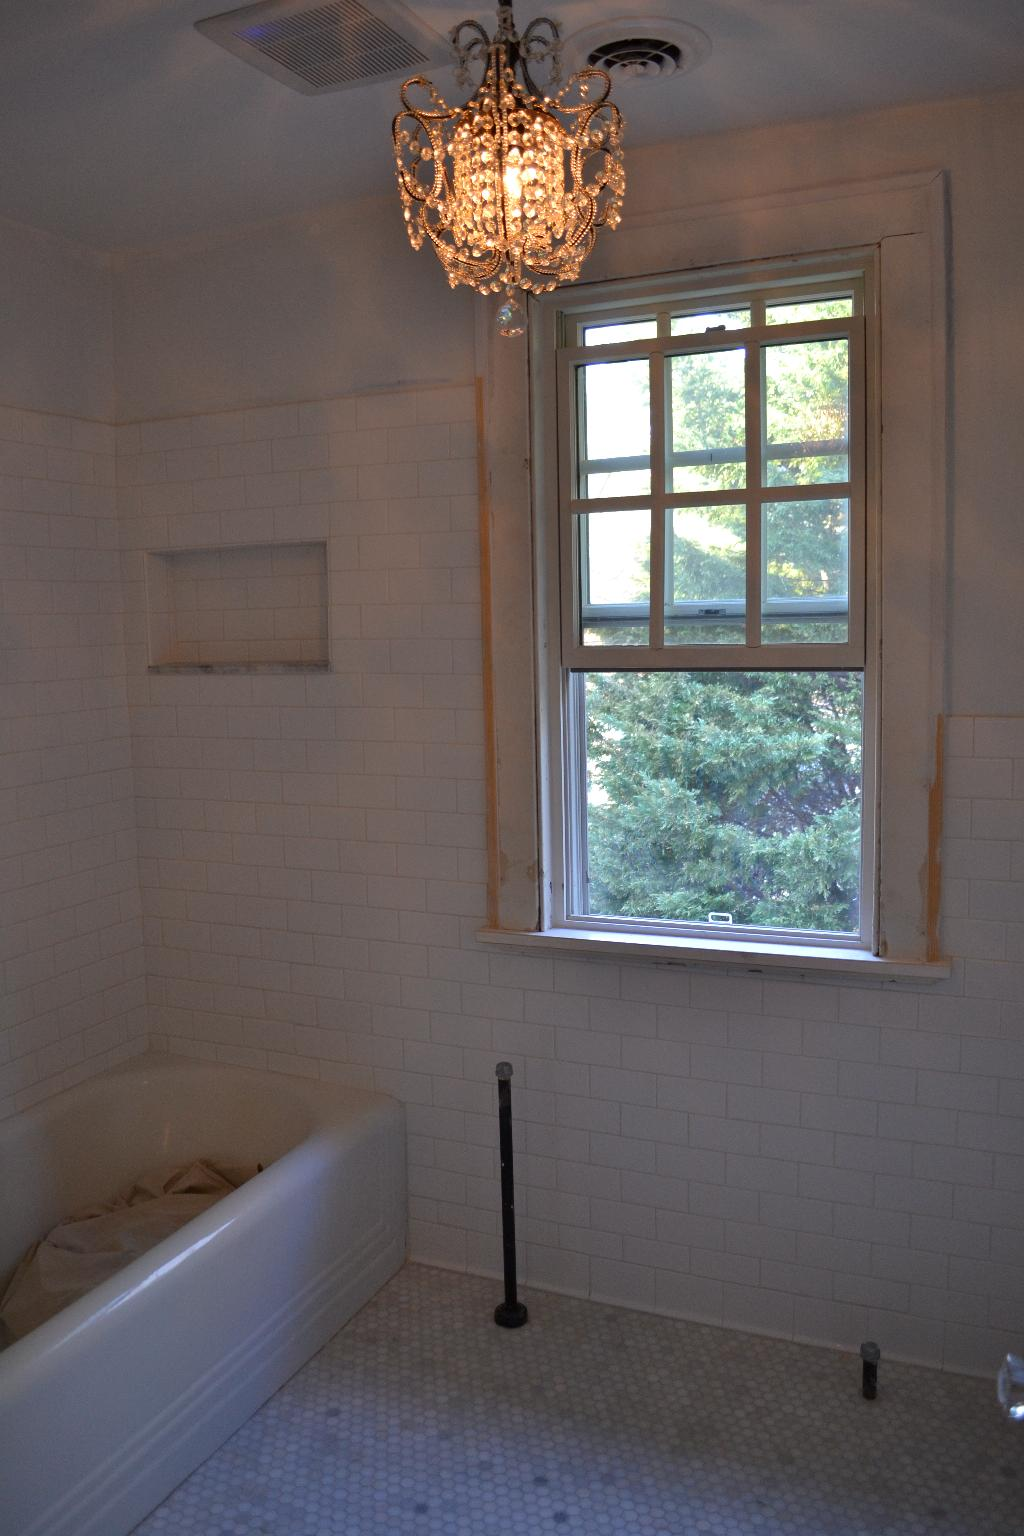 Cottage Fix - upstairs bathroom remodel in progress